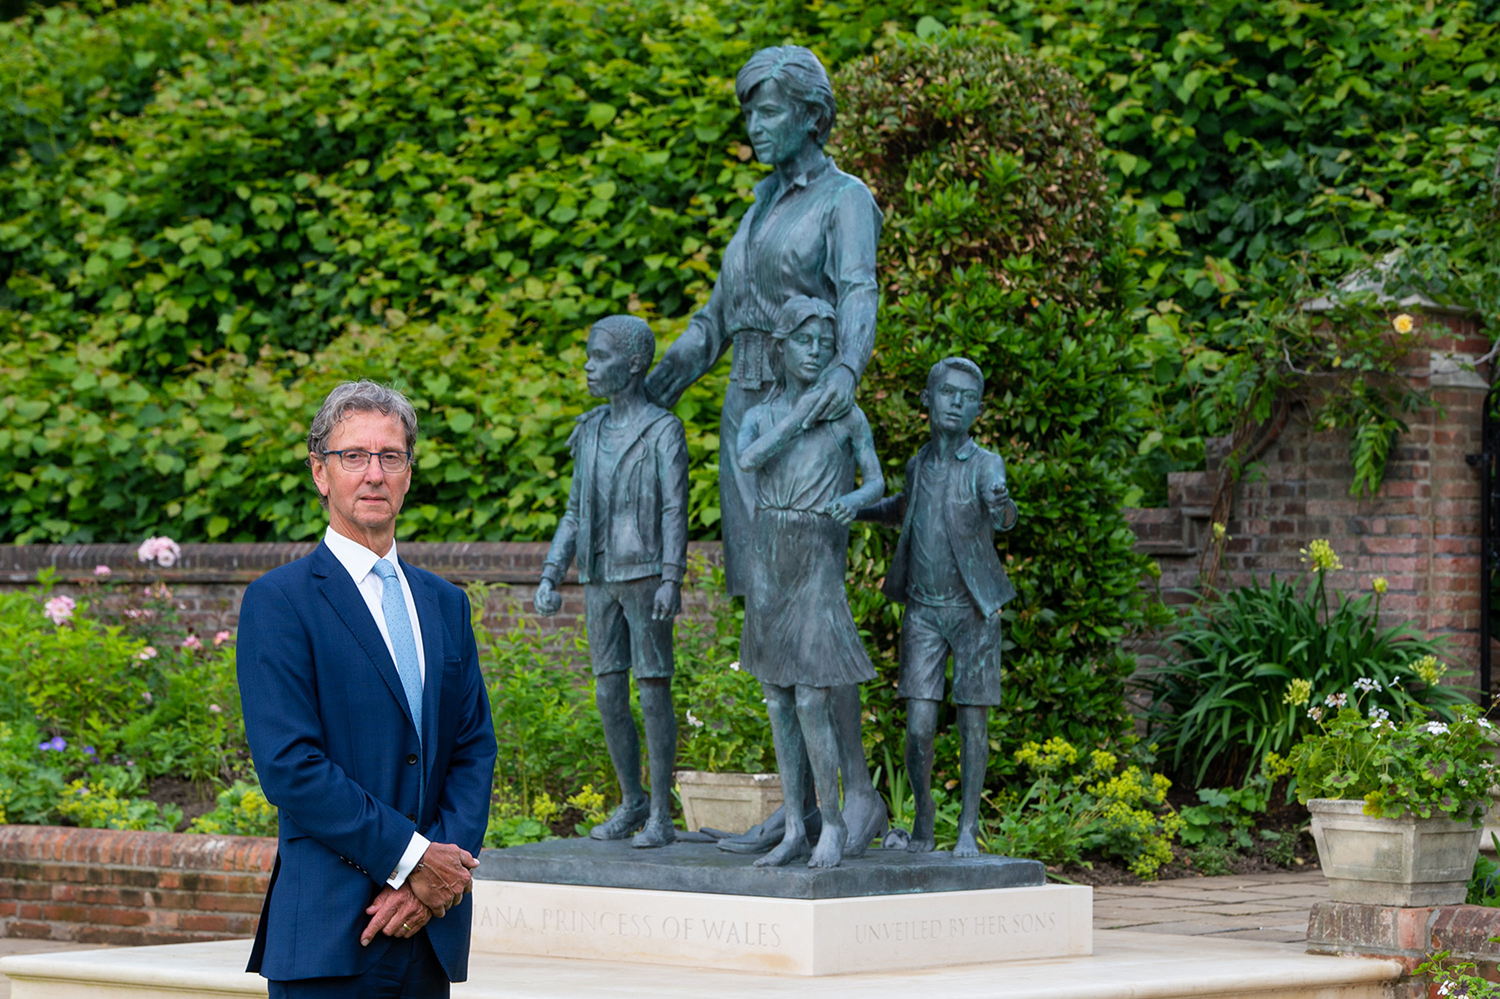 Sculptor Ian Rank-Broadley with his statue of Diana, Princess of Wales